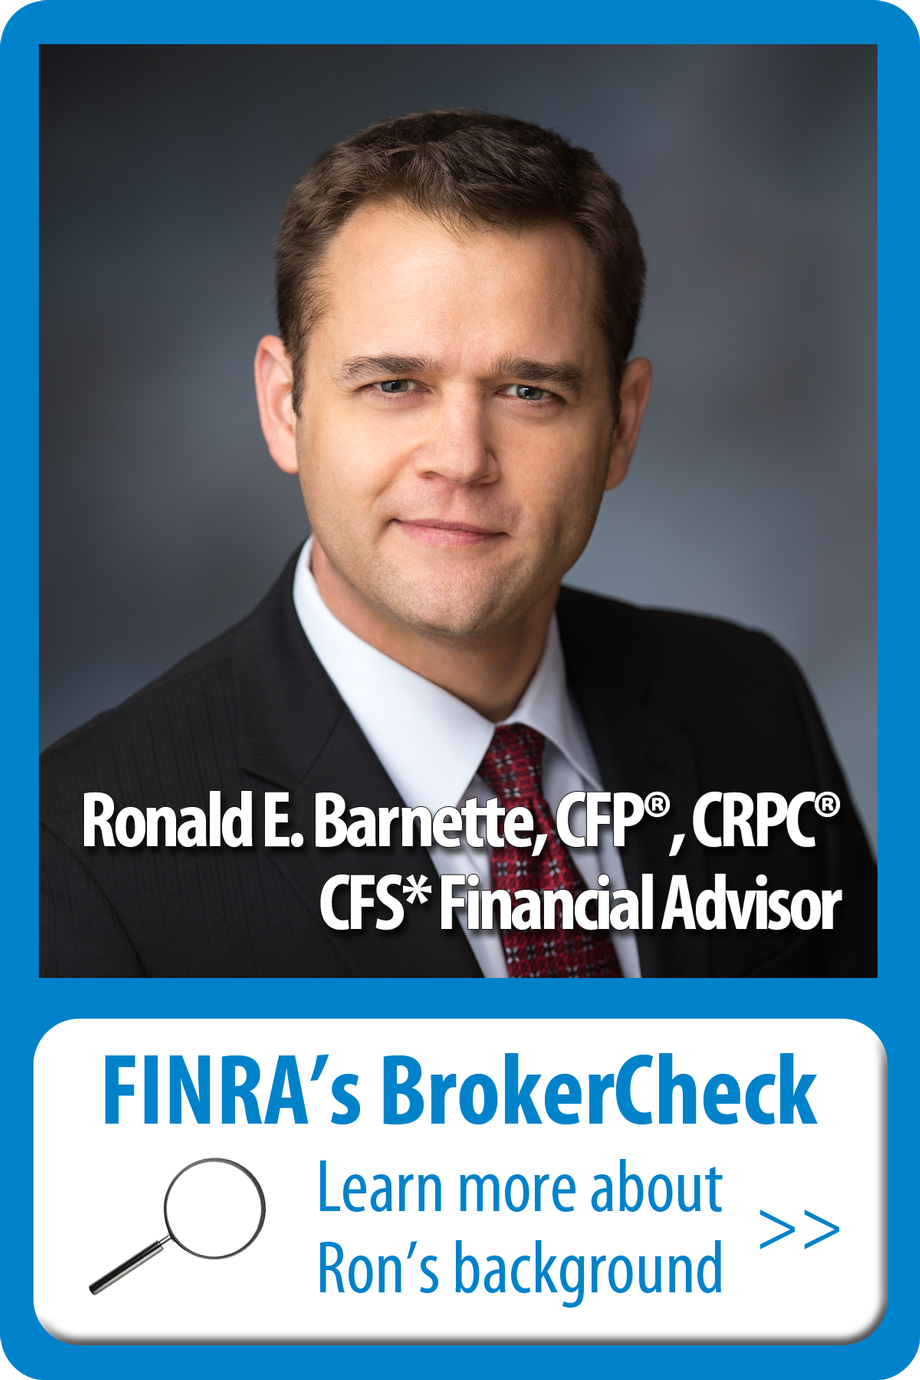 Ron Barnette, CFS* Financial Advisor